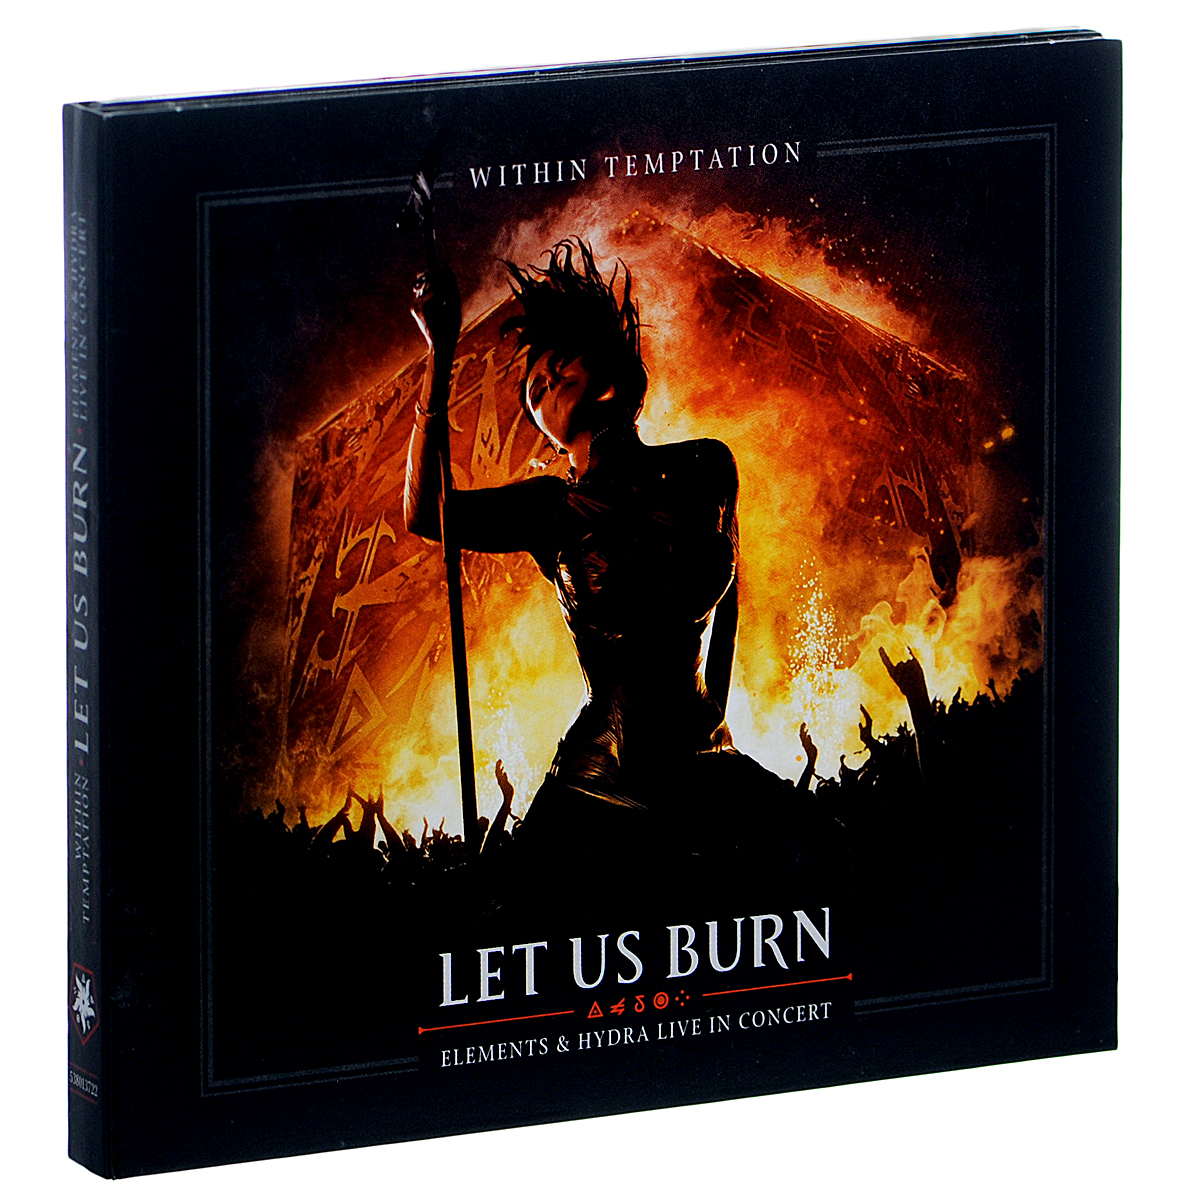 Within Temptation Within Temptation. Let Us Burn. Elements & Hydra Live In Concert (2 CD) within temptation within temptation let us burn elements